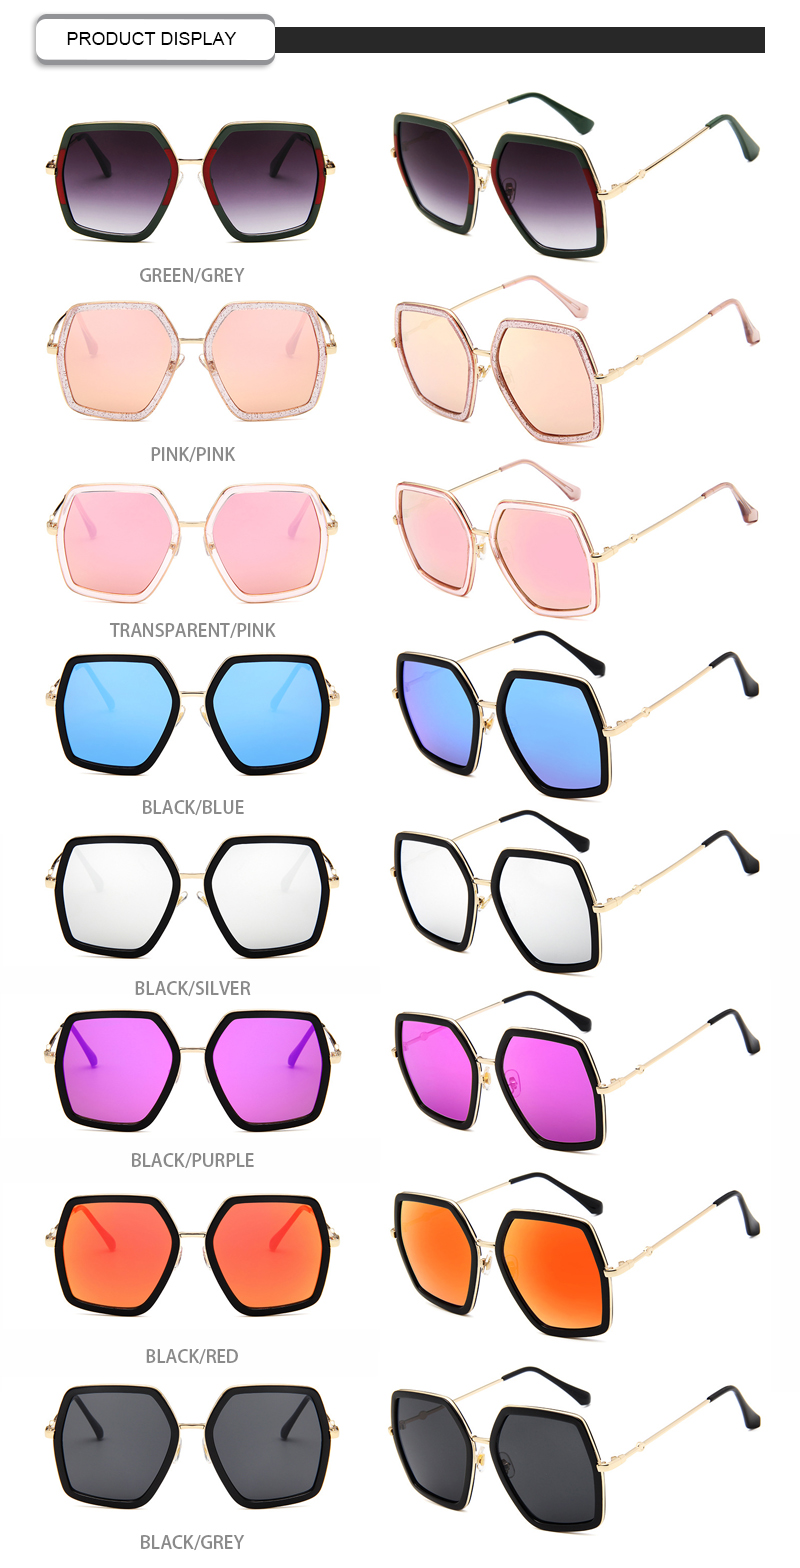 Fuqian Wholesale women's polarized mirrored sunglasses manufacturers-11